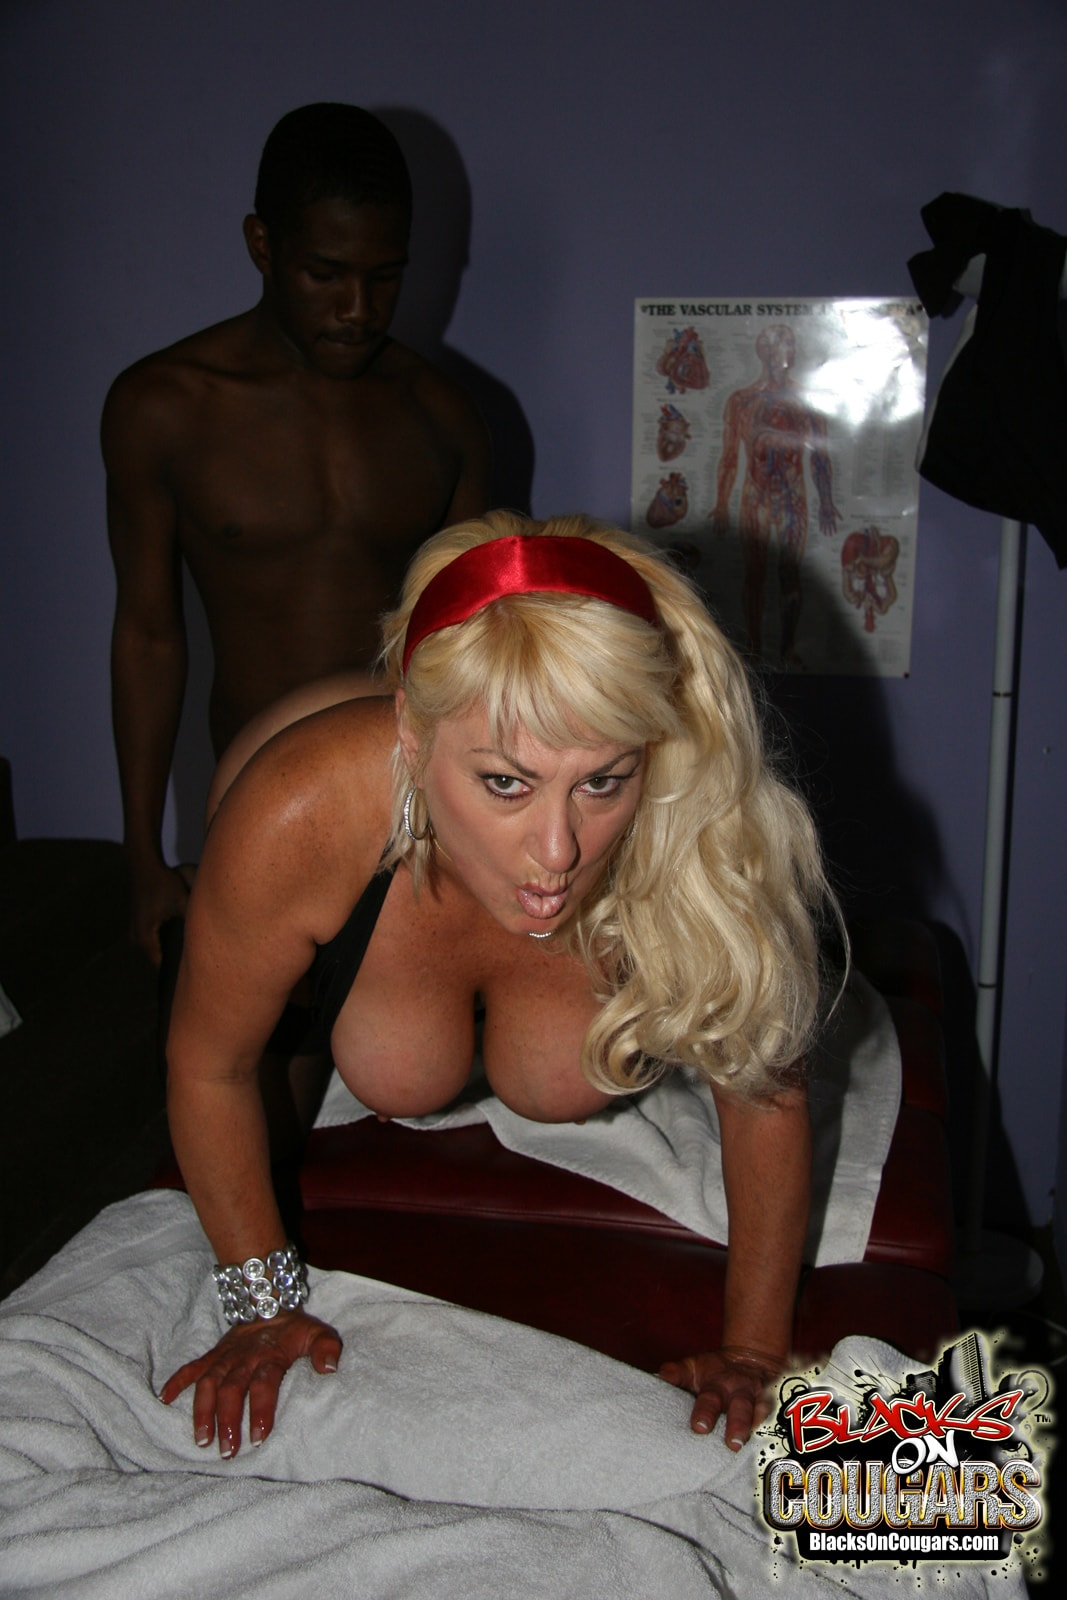 Dogfart '- Blacks On Cougars' starring Dana Hayes (Photo 18)